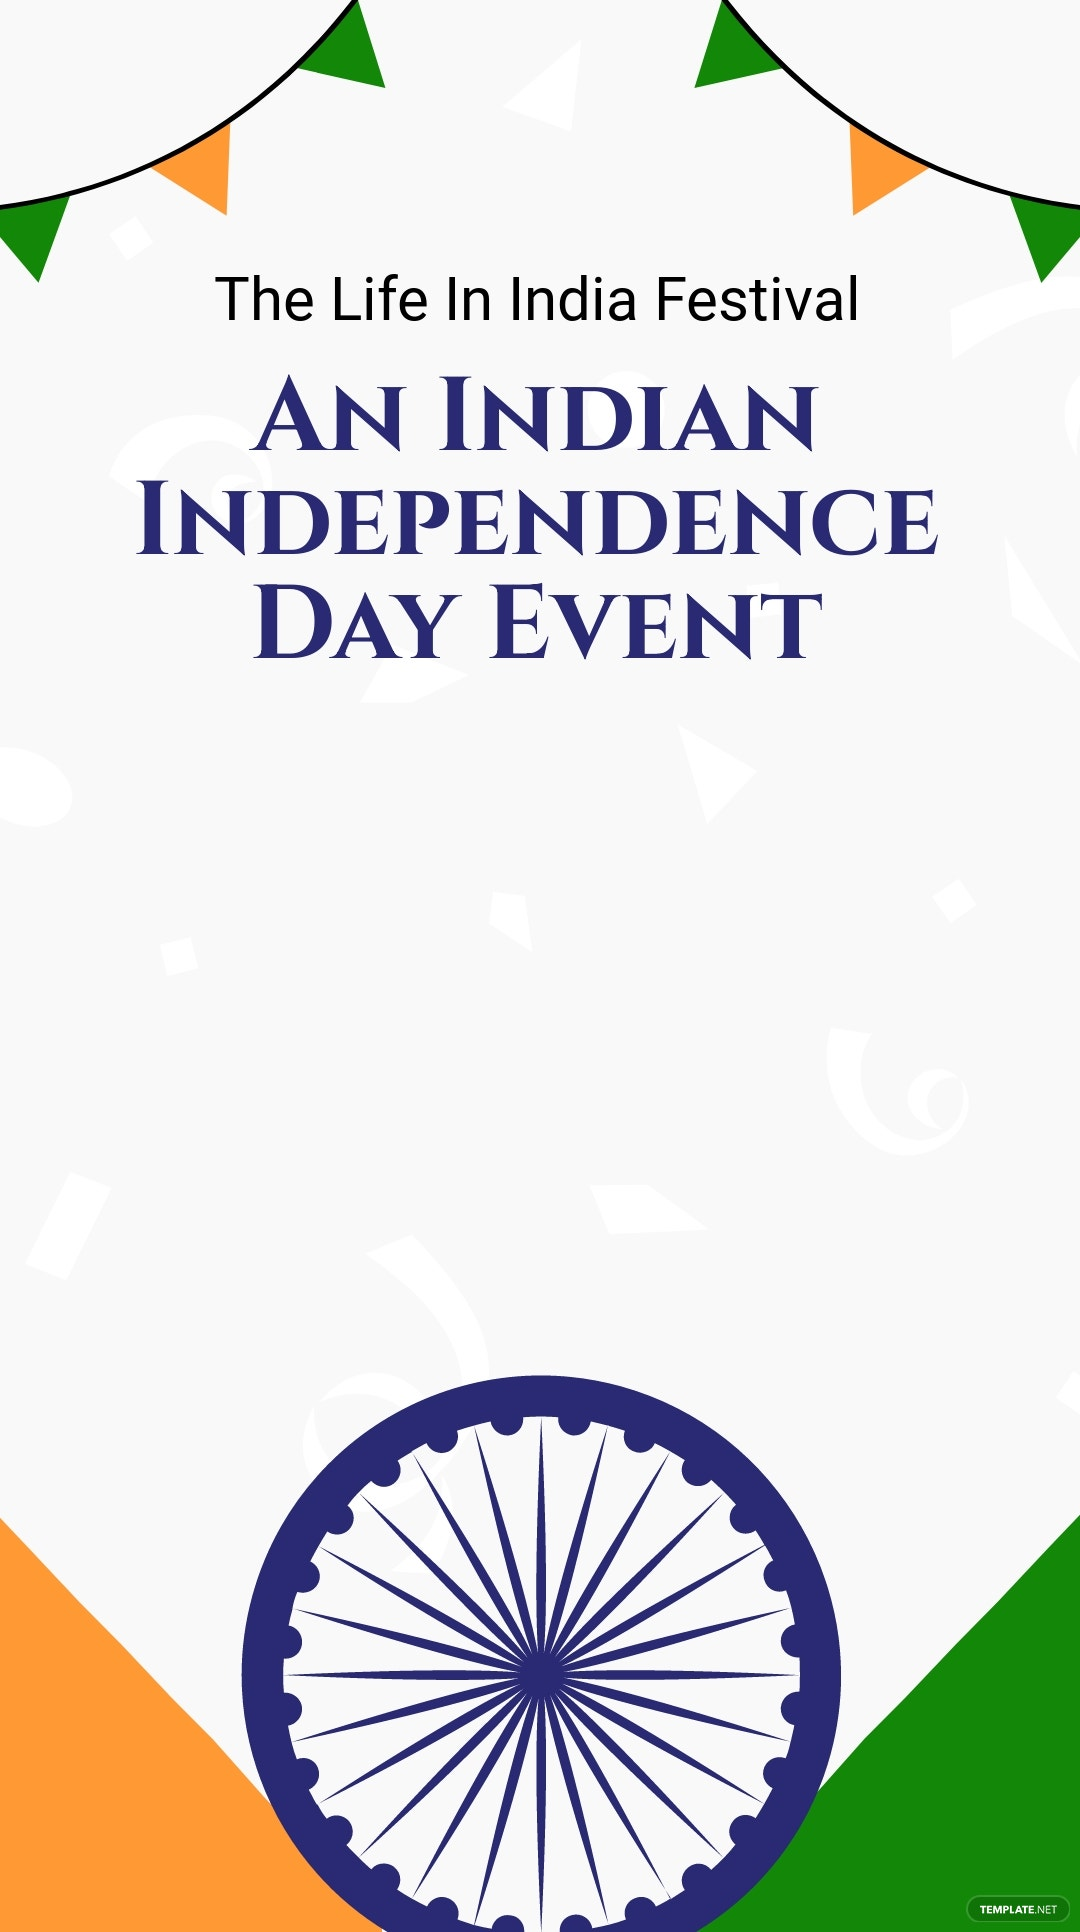 Indian Independence Day Event Snapchat Geofilter Template.jpe